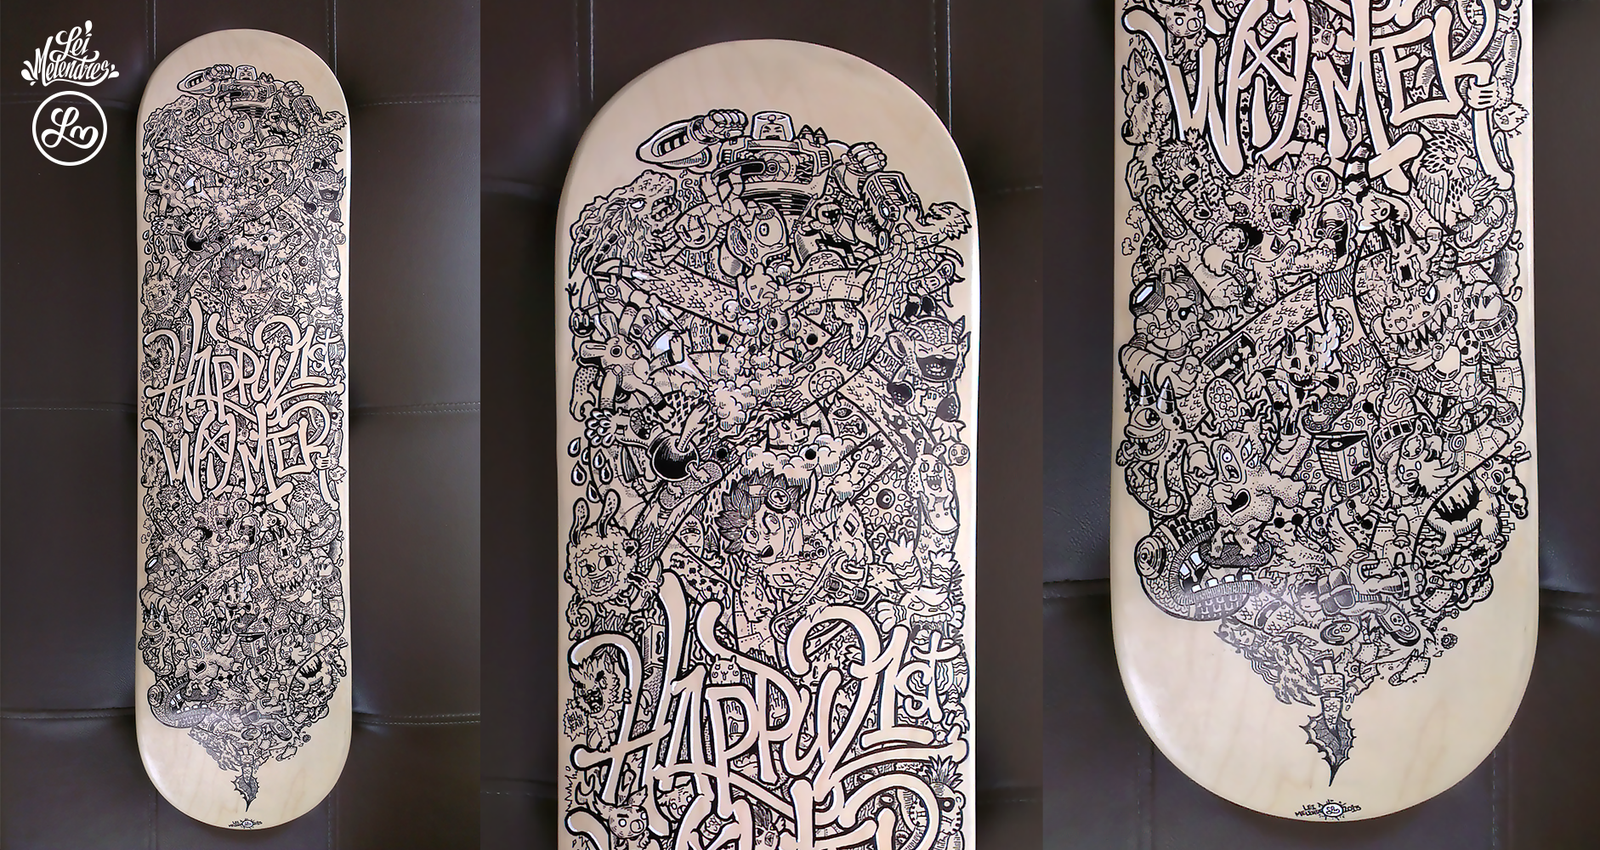 26-Skateboard-Doodle-Art-Lei-Melendres-Leight-Infinity-Mix-Doodles-www-designstack-co